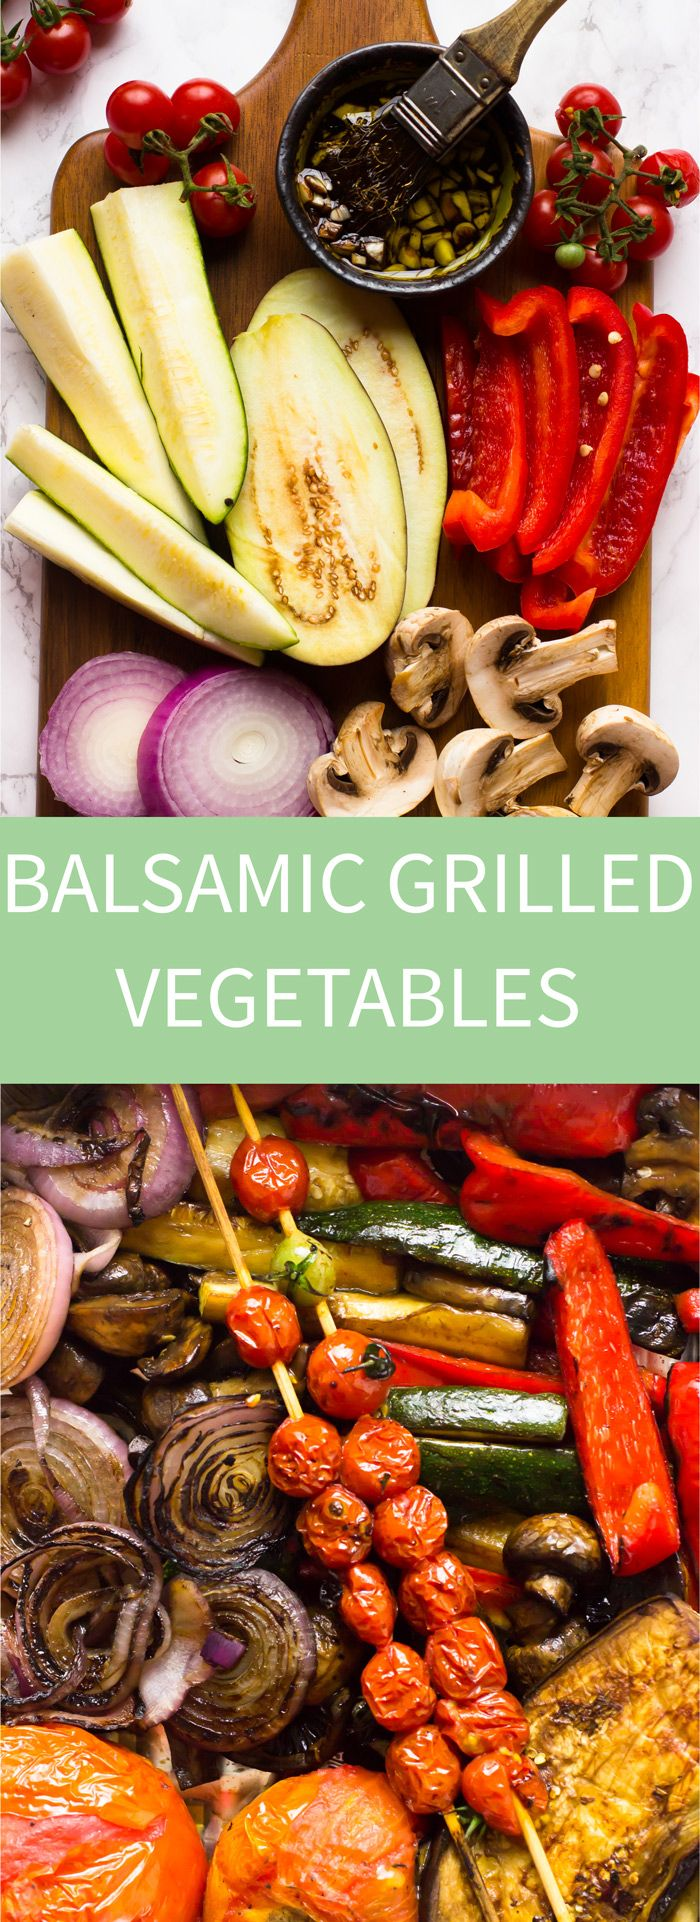 These Balsamic Grilled Vegetables are marinated in the most flavourful balsamic dressing and come out so juicy and delicious!